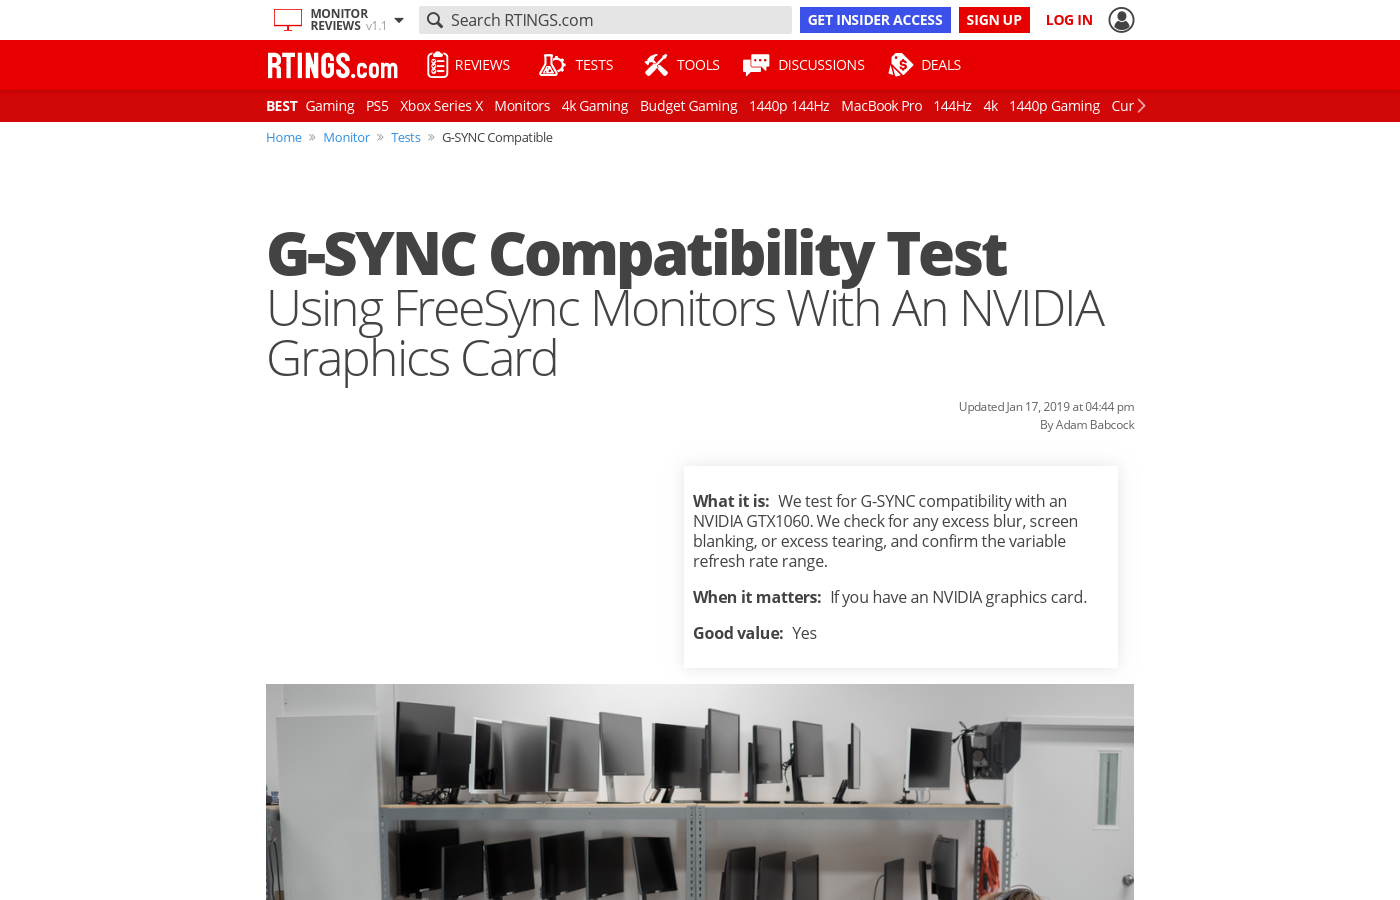 G-SYNC Compatibility Test: Using FreeSync Monitors With An NVIDIA